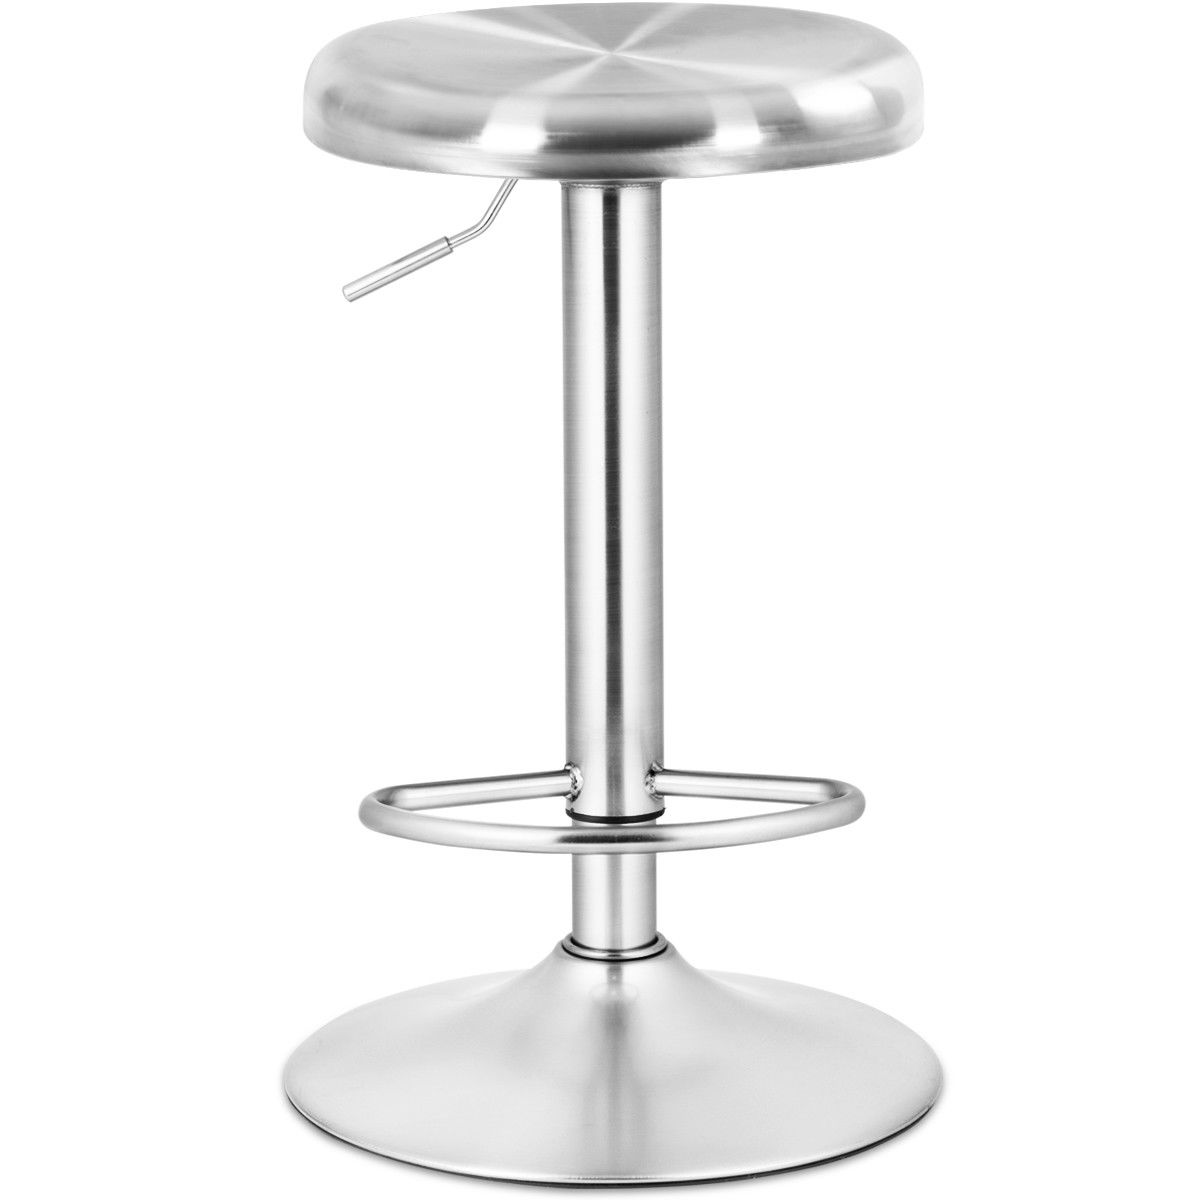 Costway Brushed Stainless Steel Swivel Bar Stool Seat Adjustable Height Round Top Silver